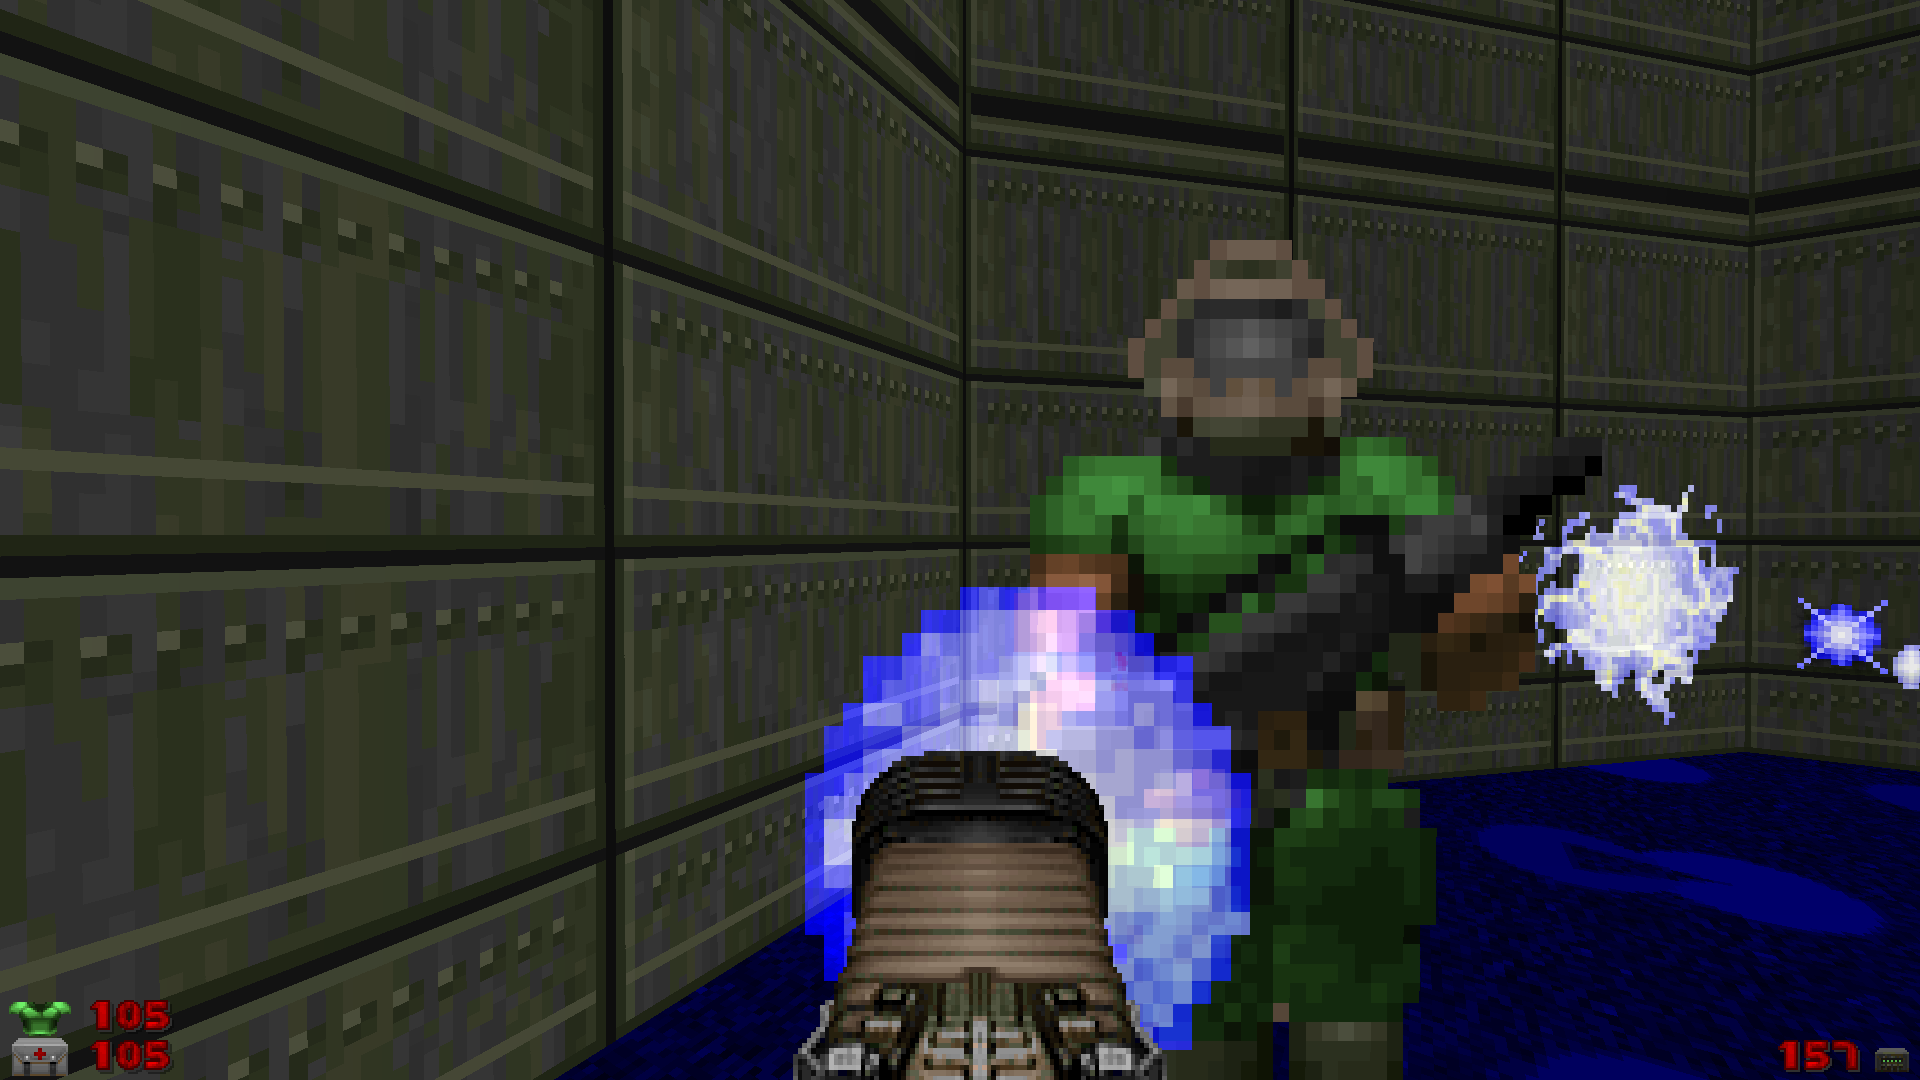 Screenshot_Doom_20201226_214638.png.a4fd33db4effb8e81a6d3aea5b2f49c2.png